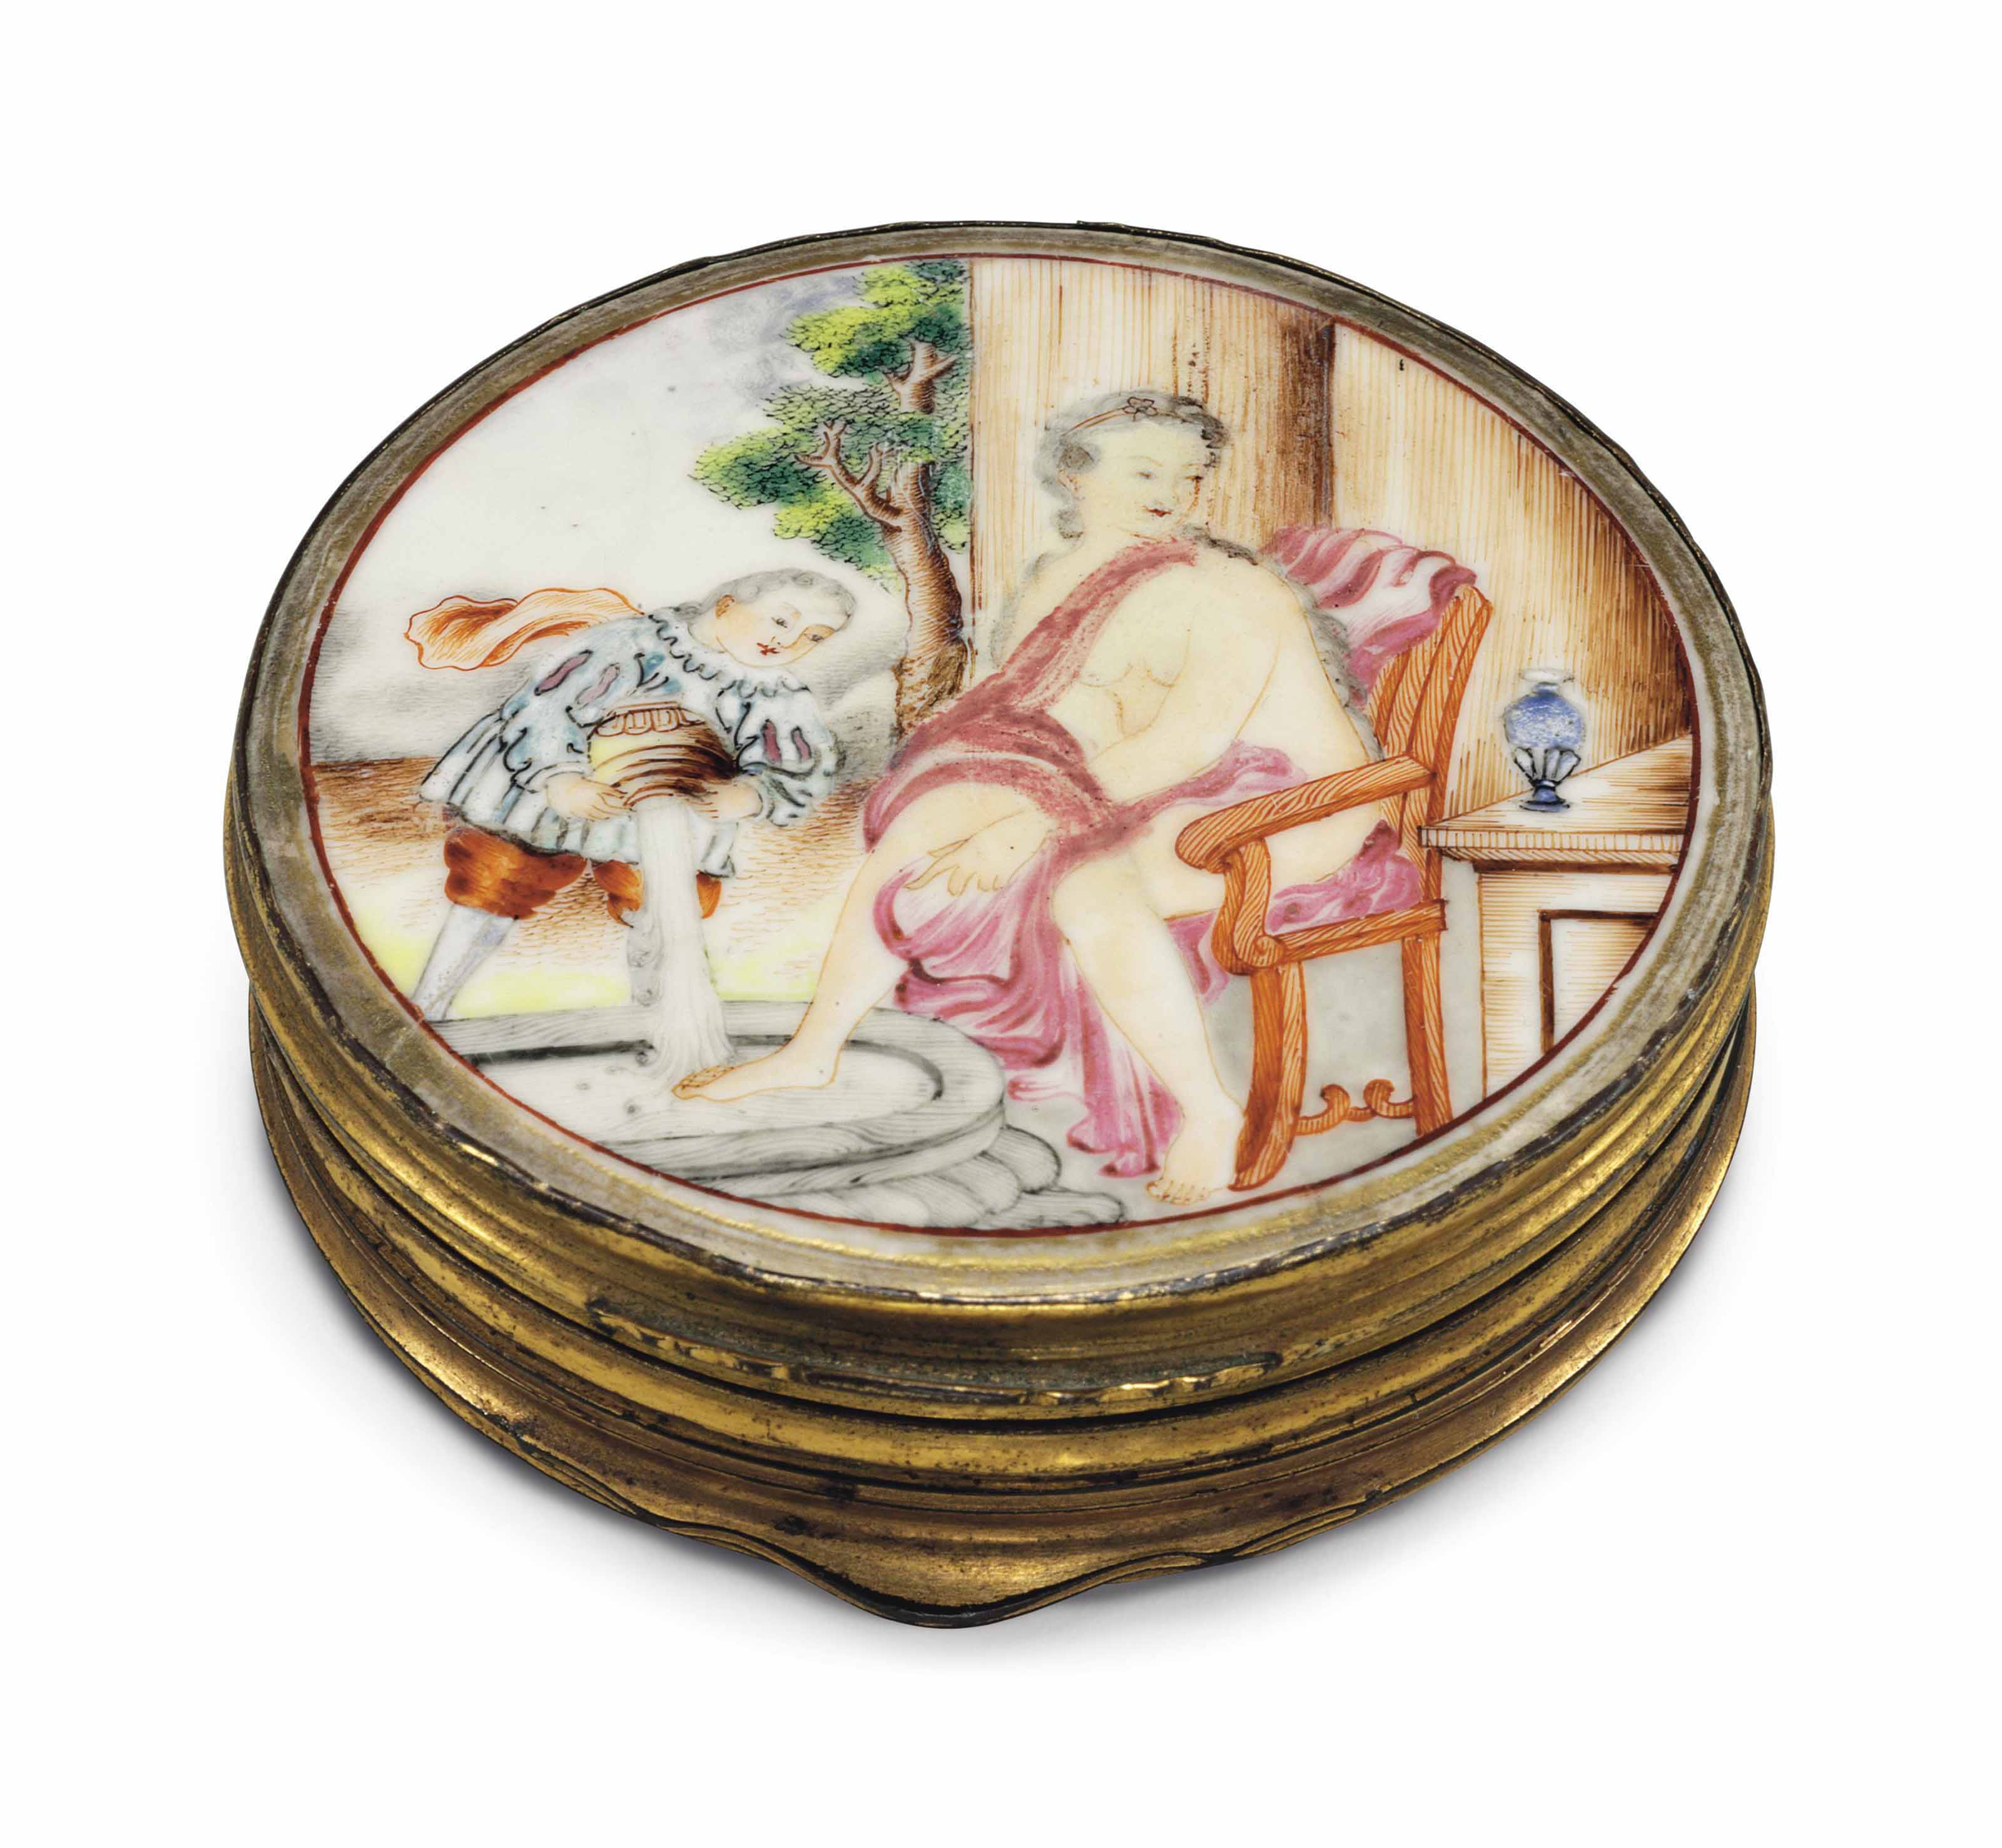 A FAMILLE ROSE PORCELAIN CIRCULAR DOUBLE SNUFF BOX OR PATCH BOX